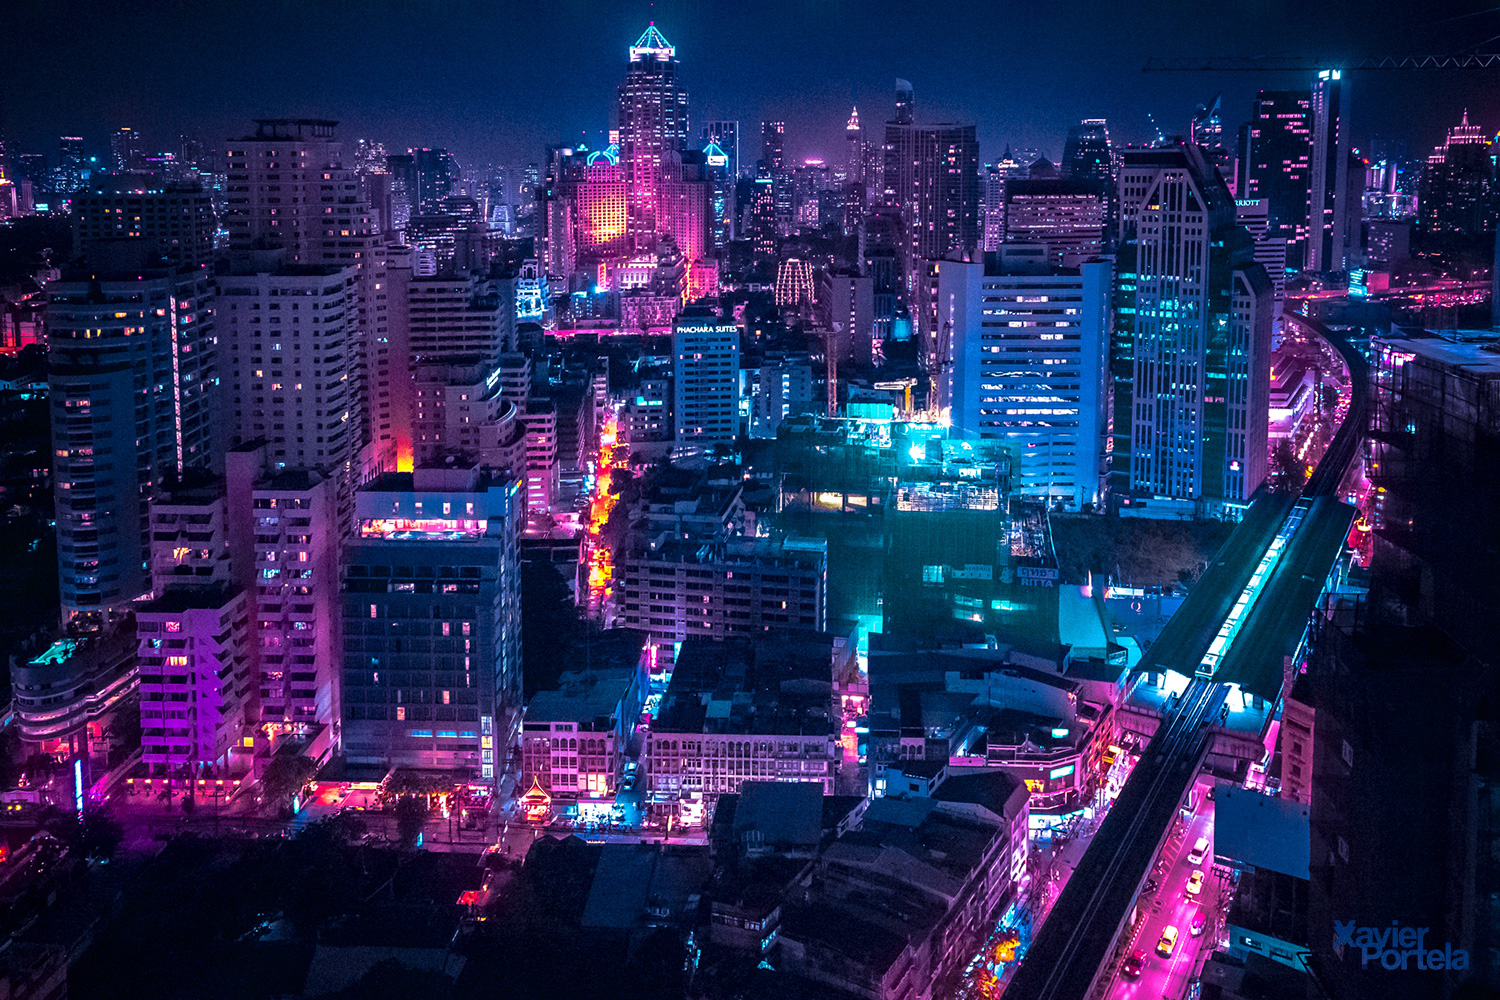 1920x1080 Wallpaper Tron Girl Aerial Explorations Of International Cityscapes Washed In